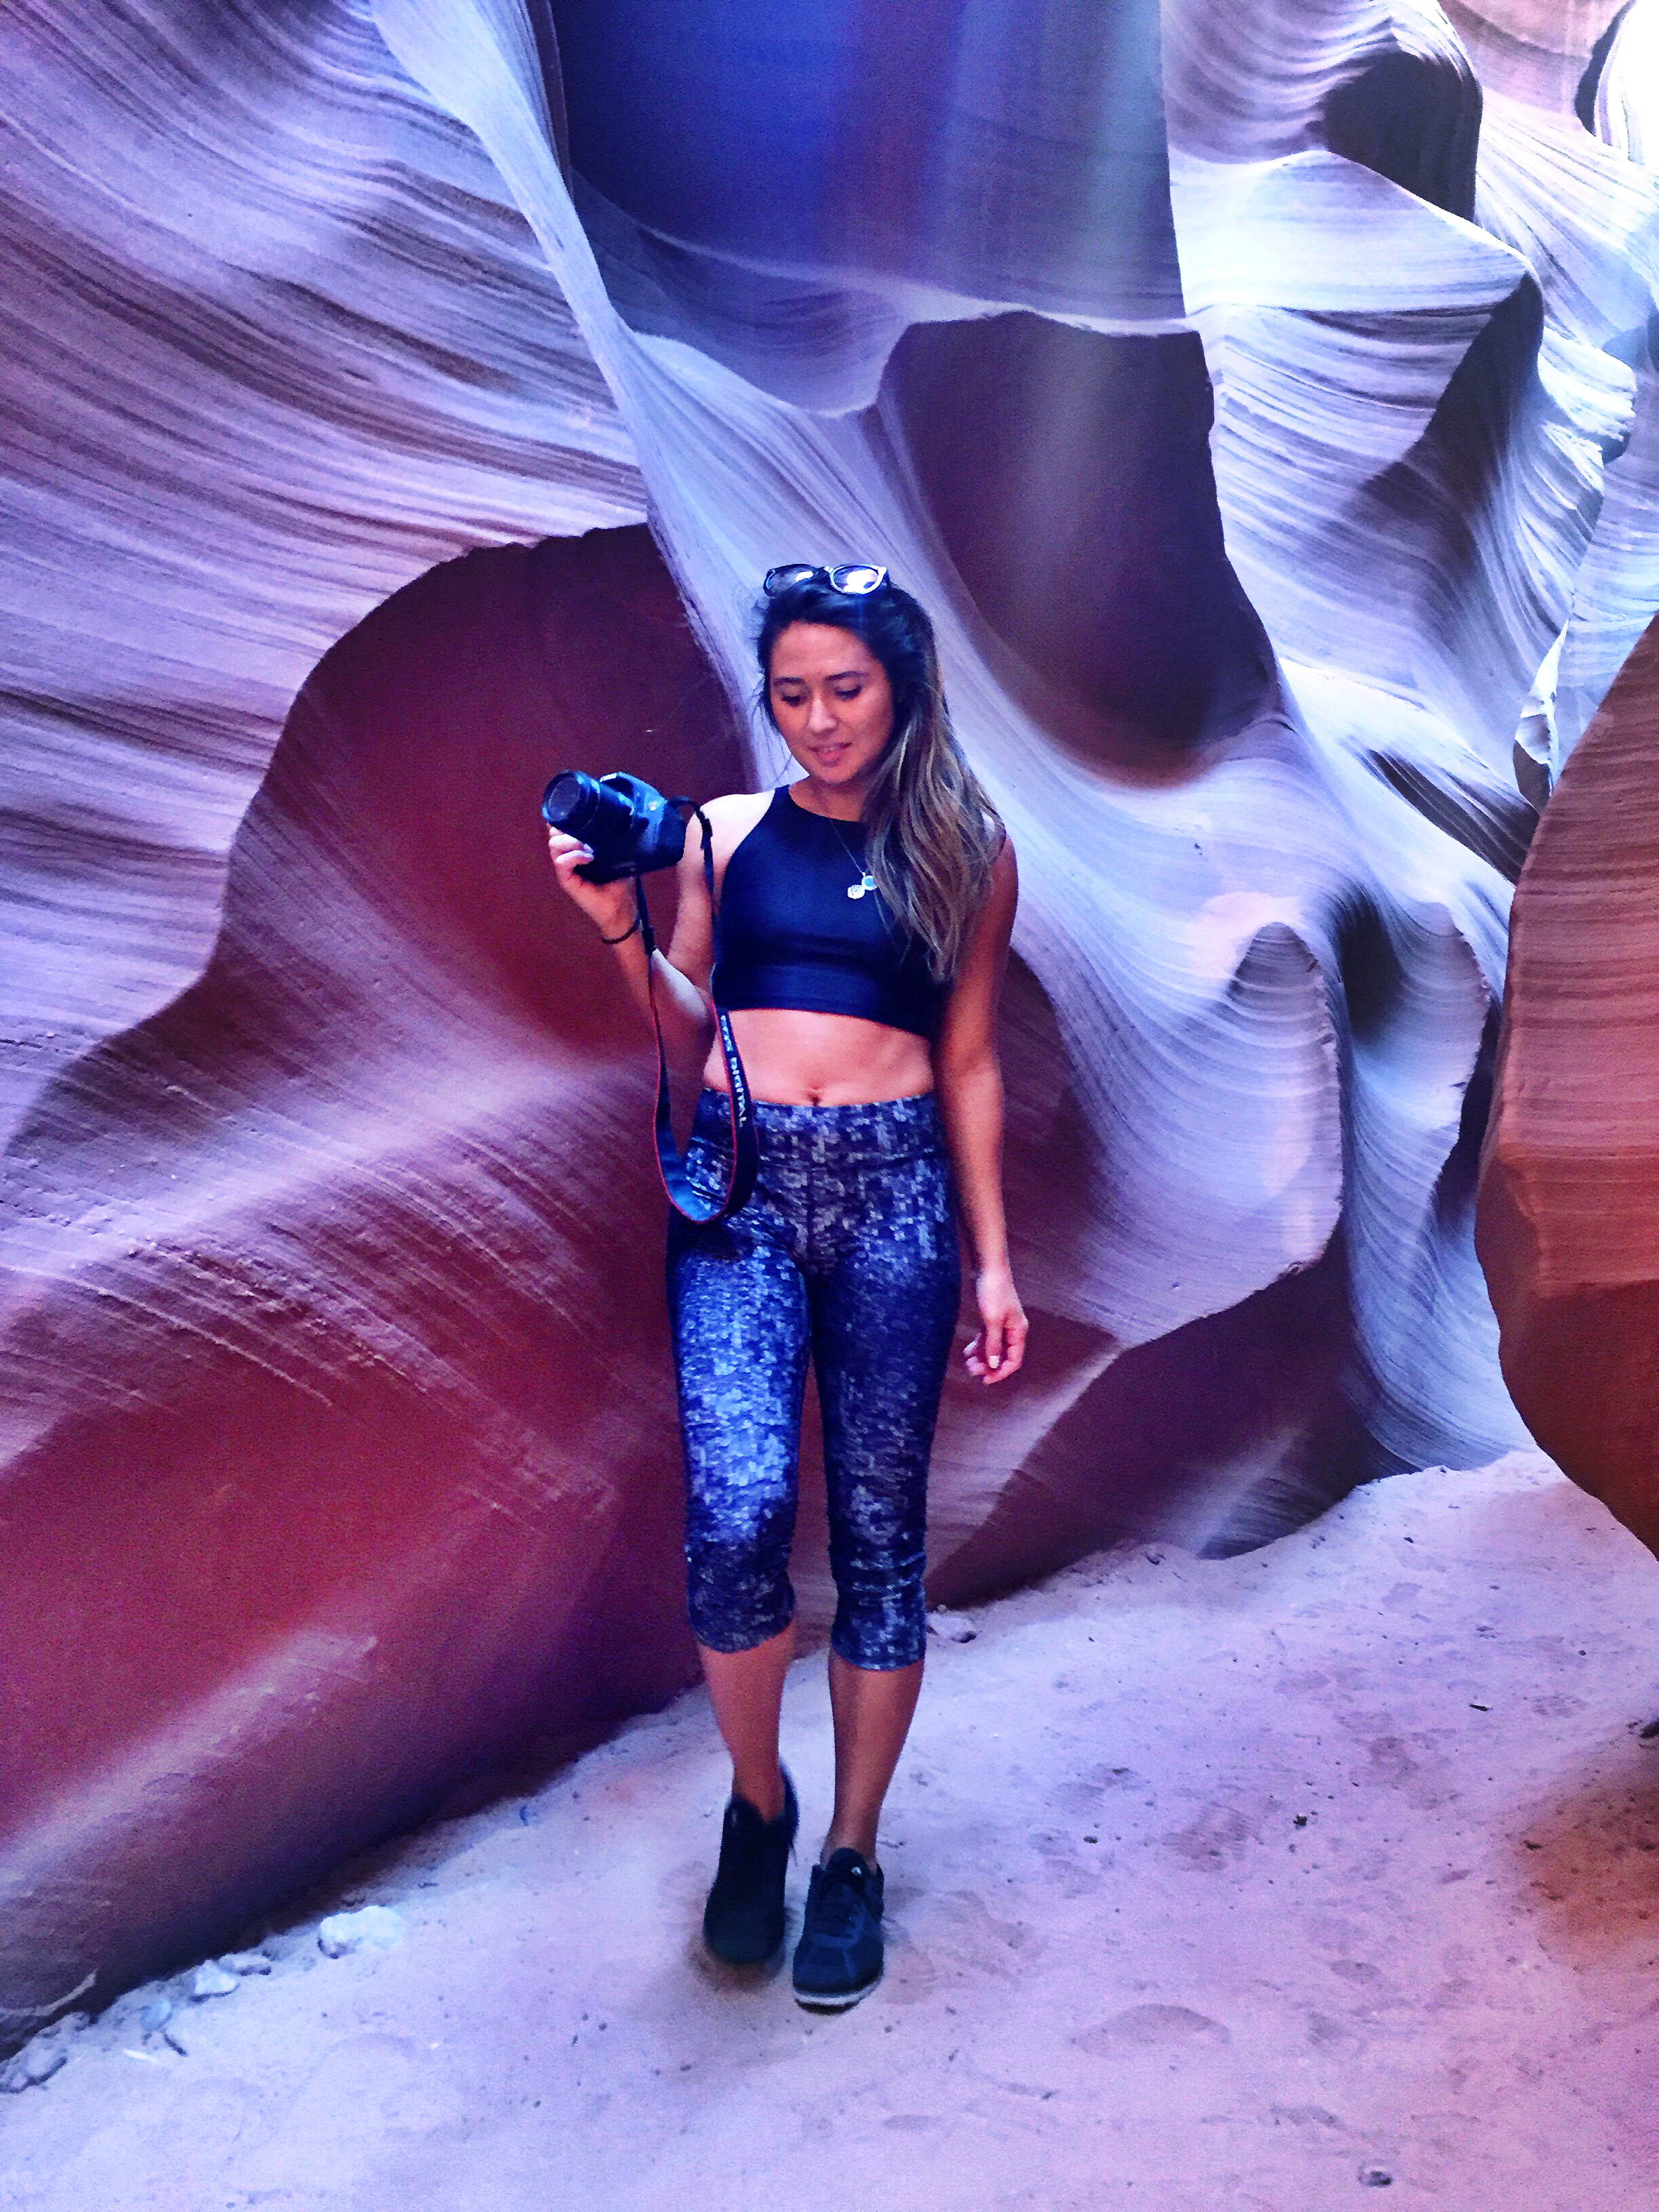 photos-inside-antelope-canyon